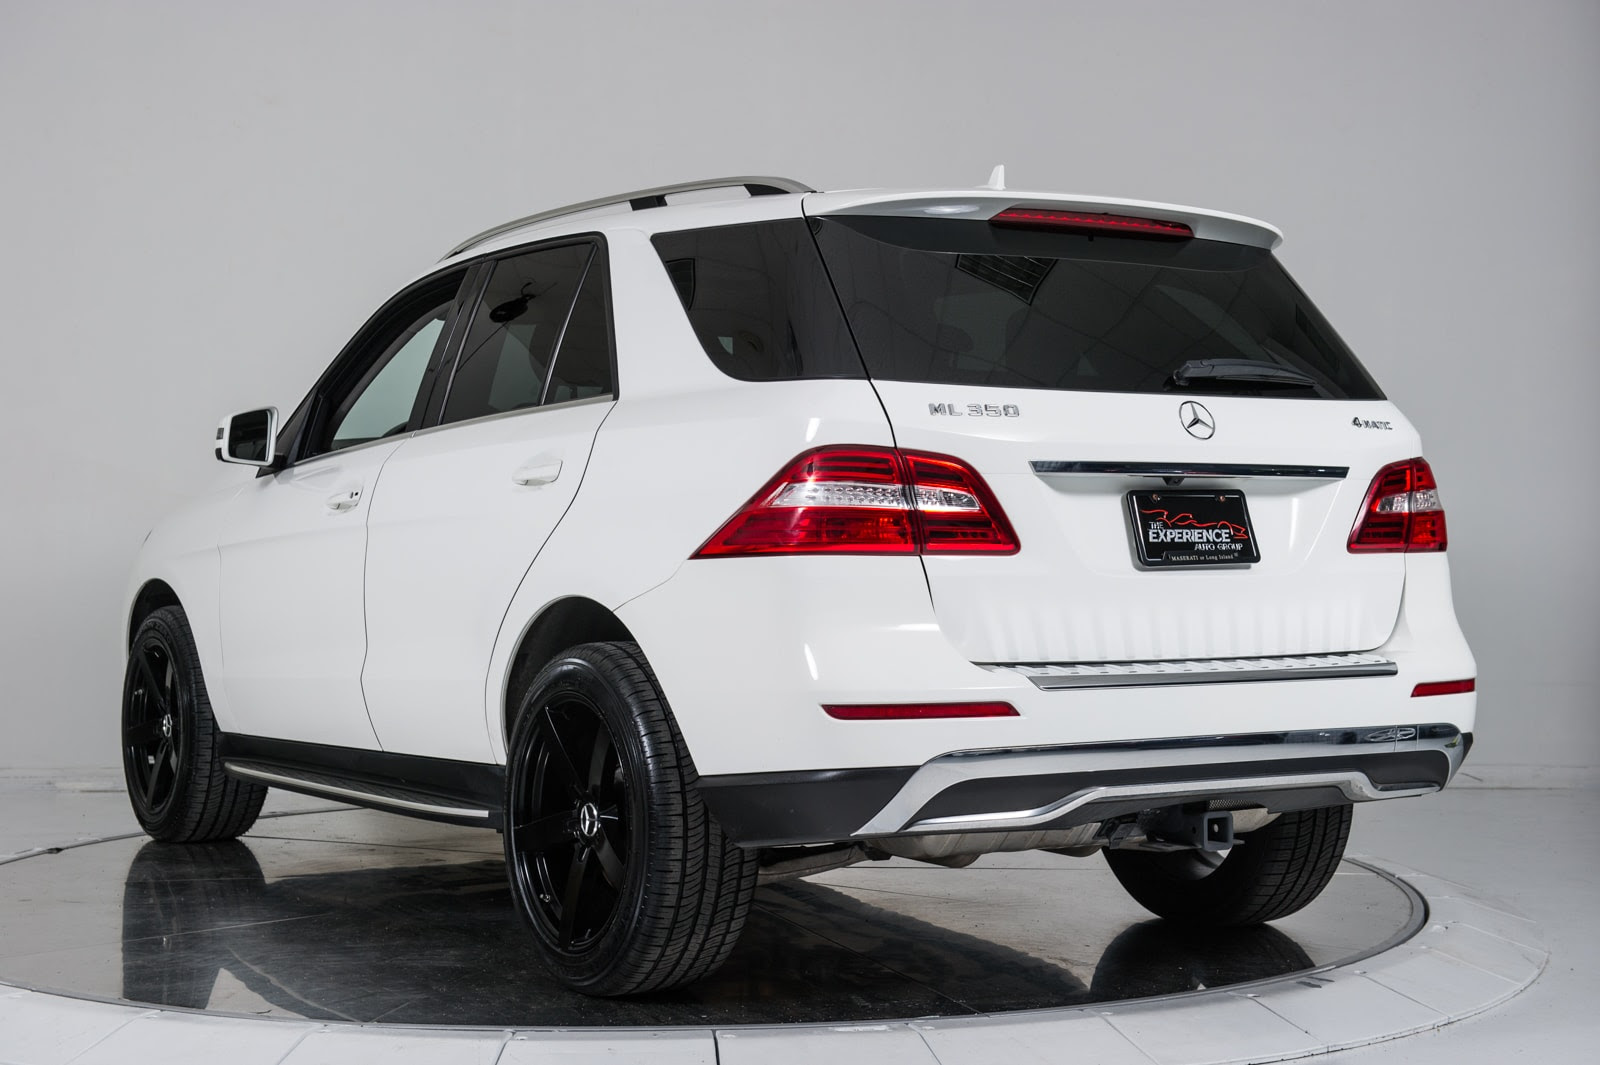 Used 2014 MERCEDES-BENZ ML350 4MATIC For Sale | Plainview ...